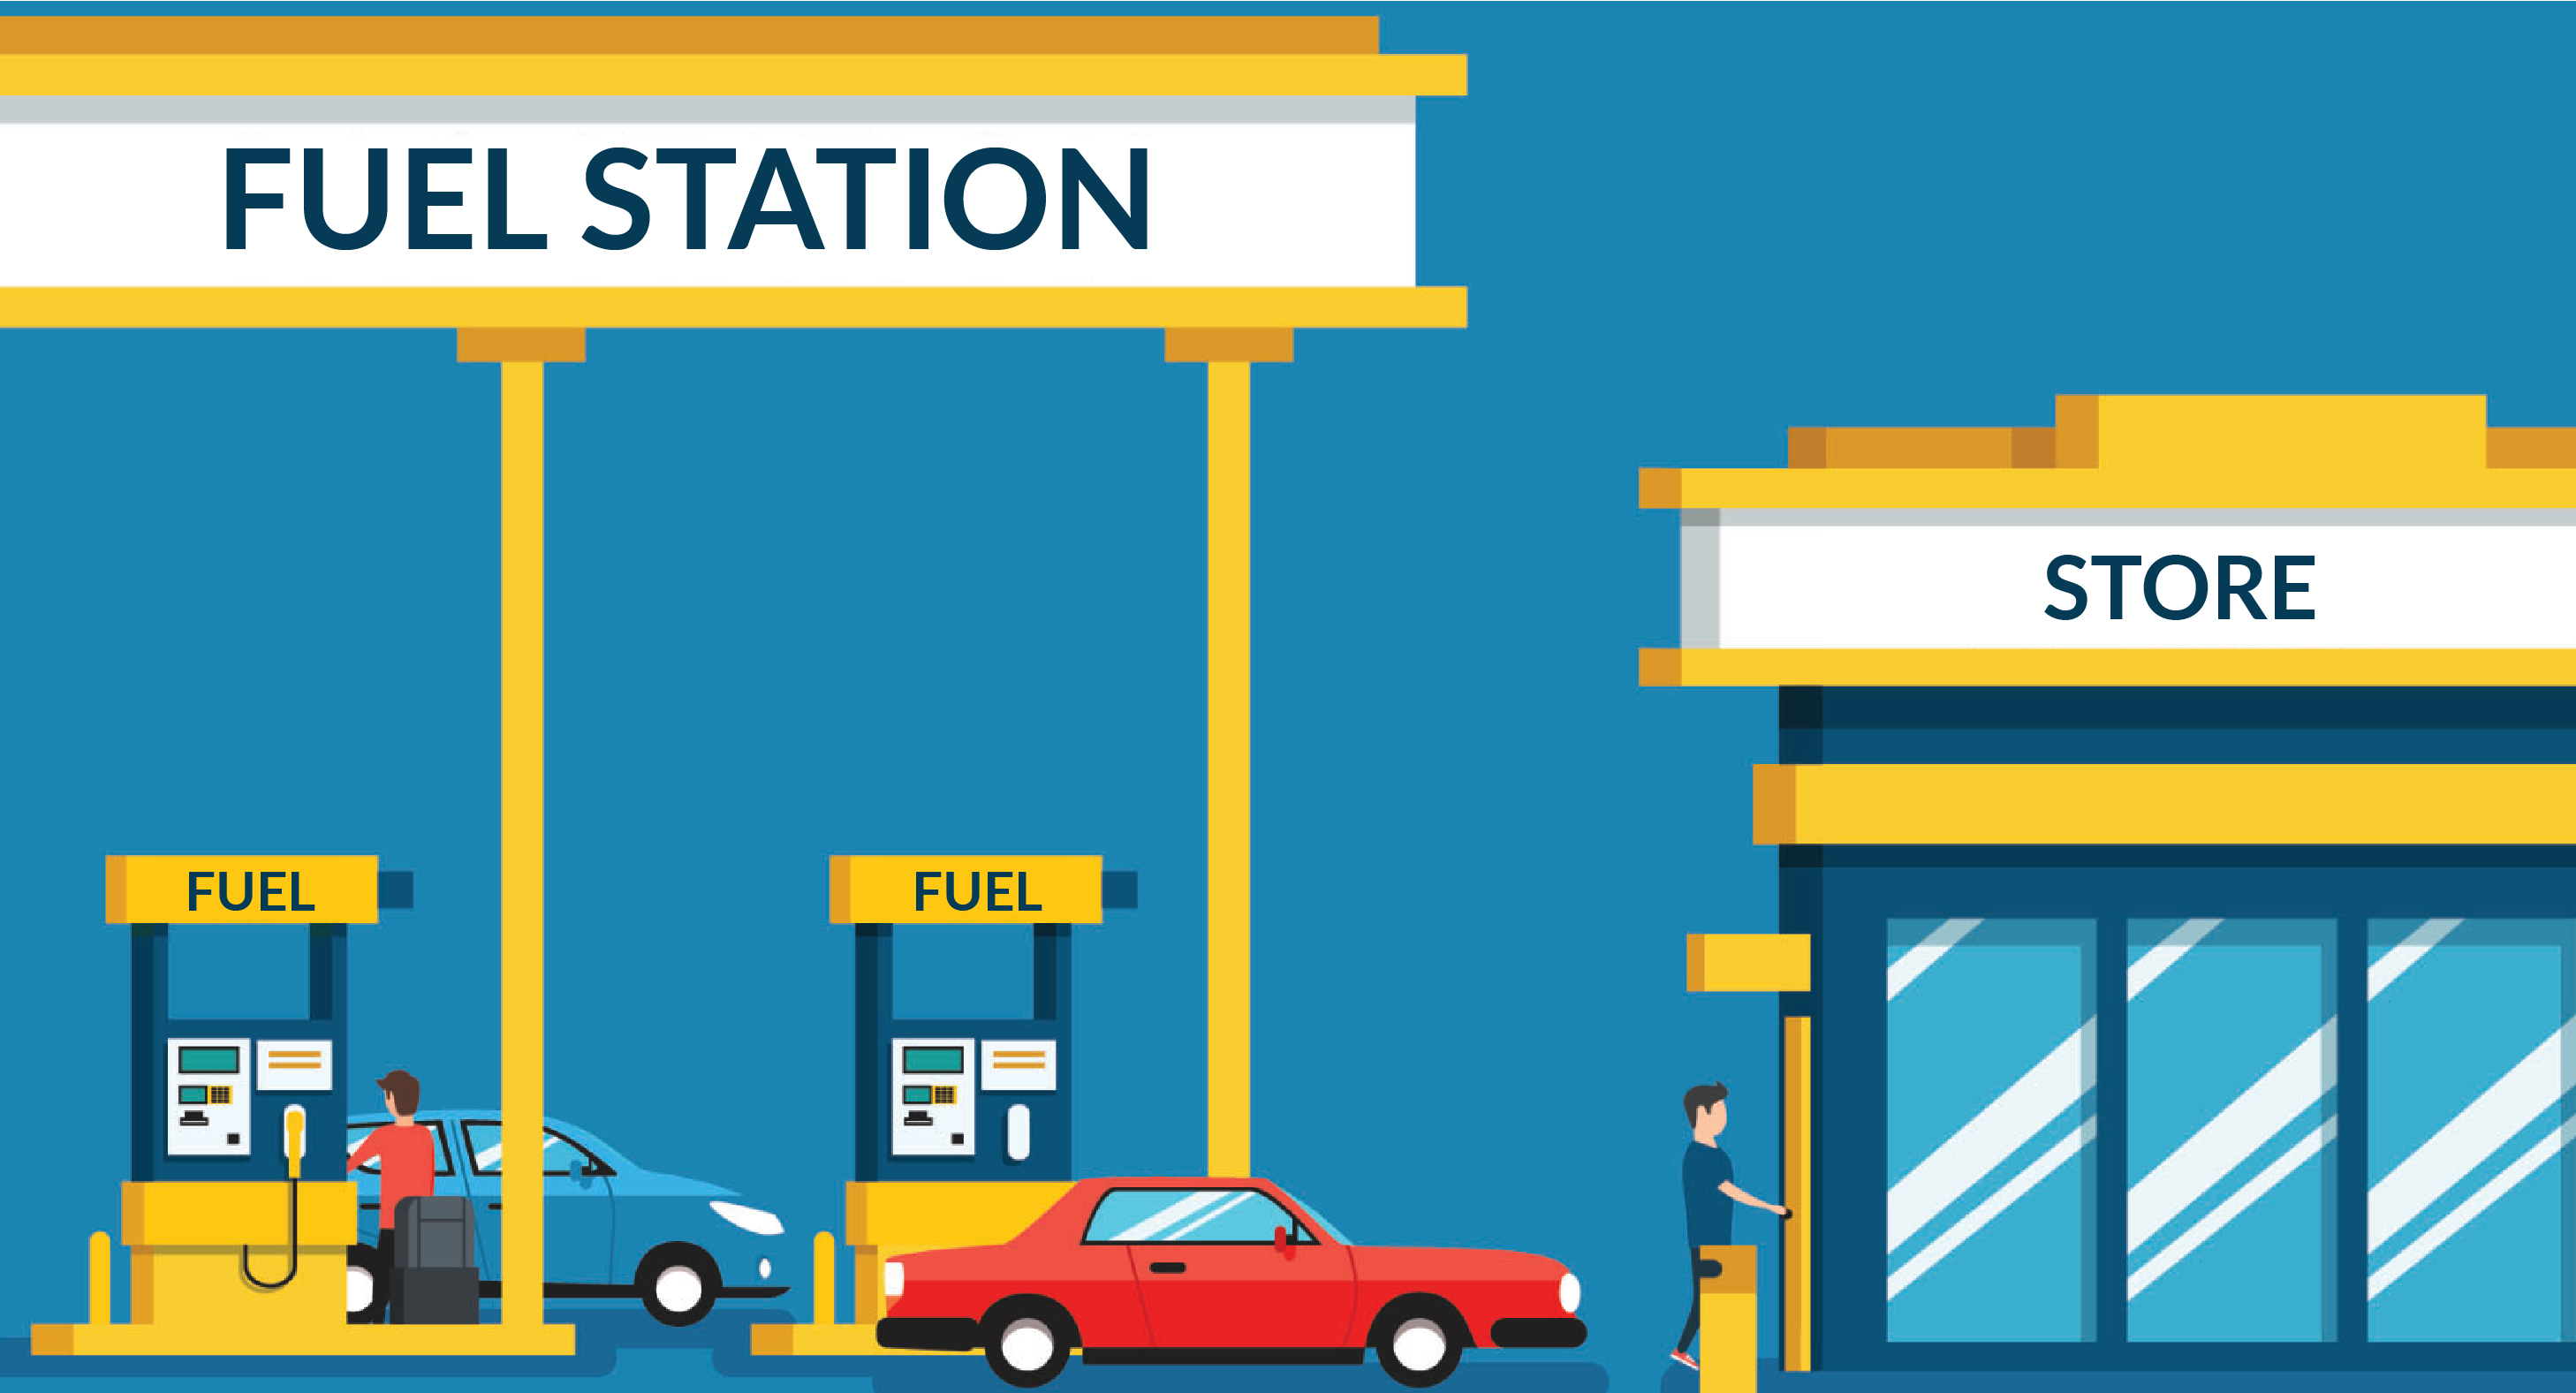 5 Inventive Ways To Attract Clients To Your Fuel Station